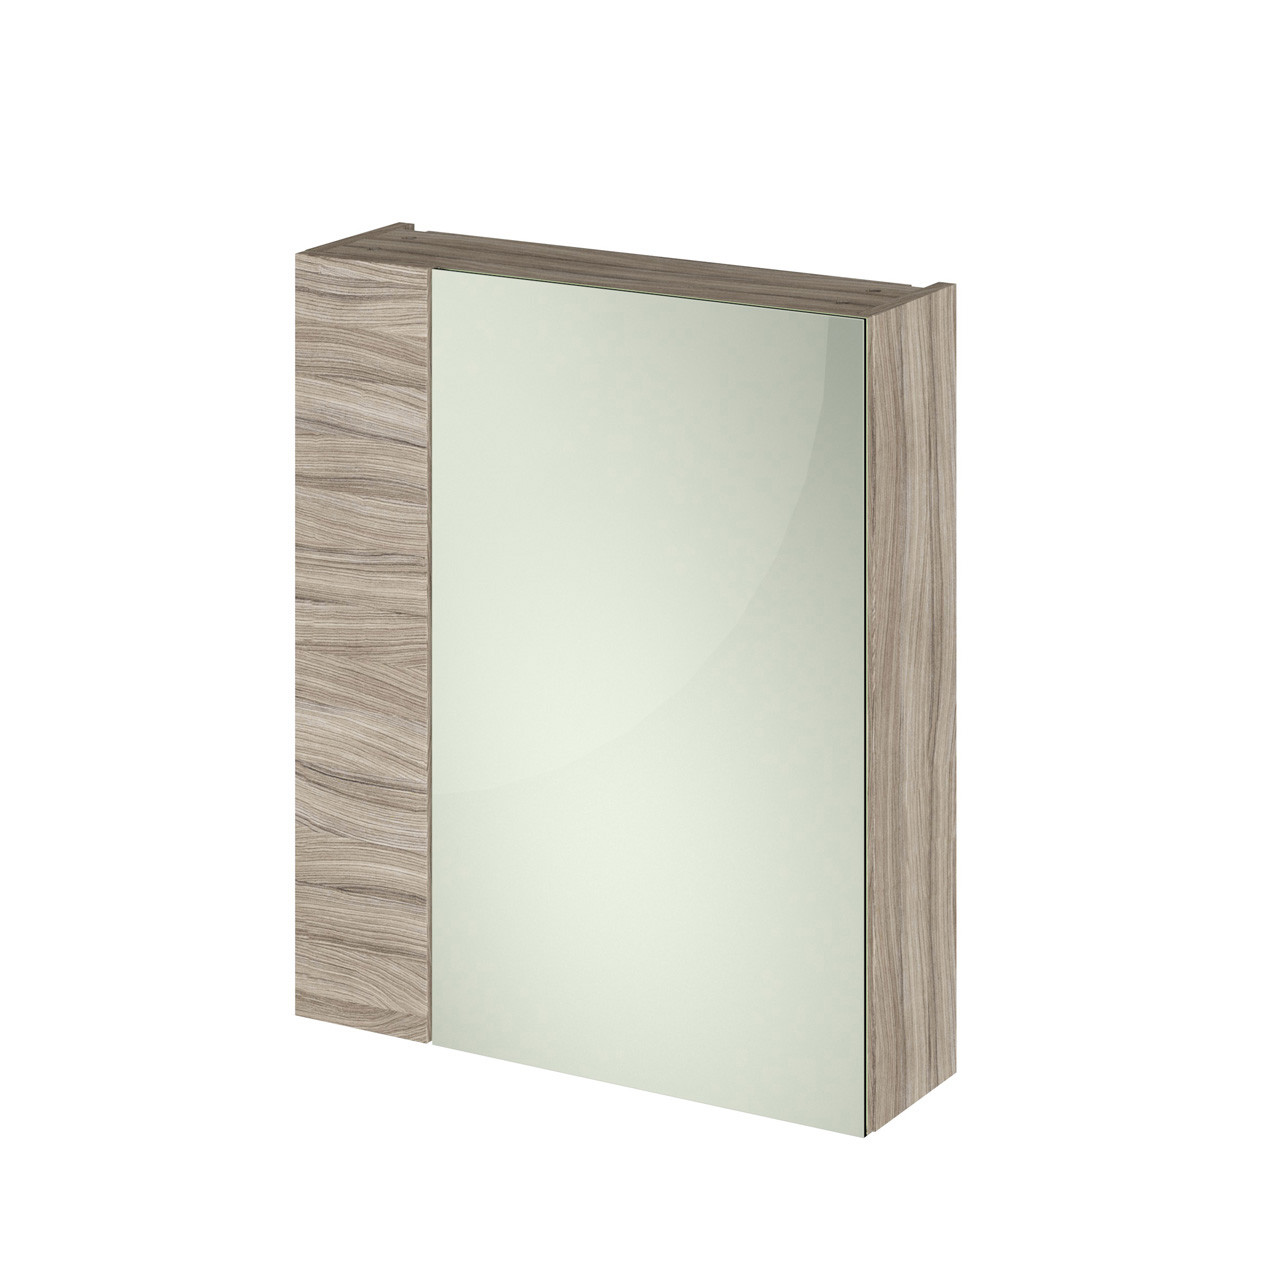 Hudson Reed 600 Fitted Mirror Unit (75/25) 715mm x 600mm x 182mm - OFF218